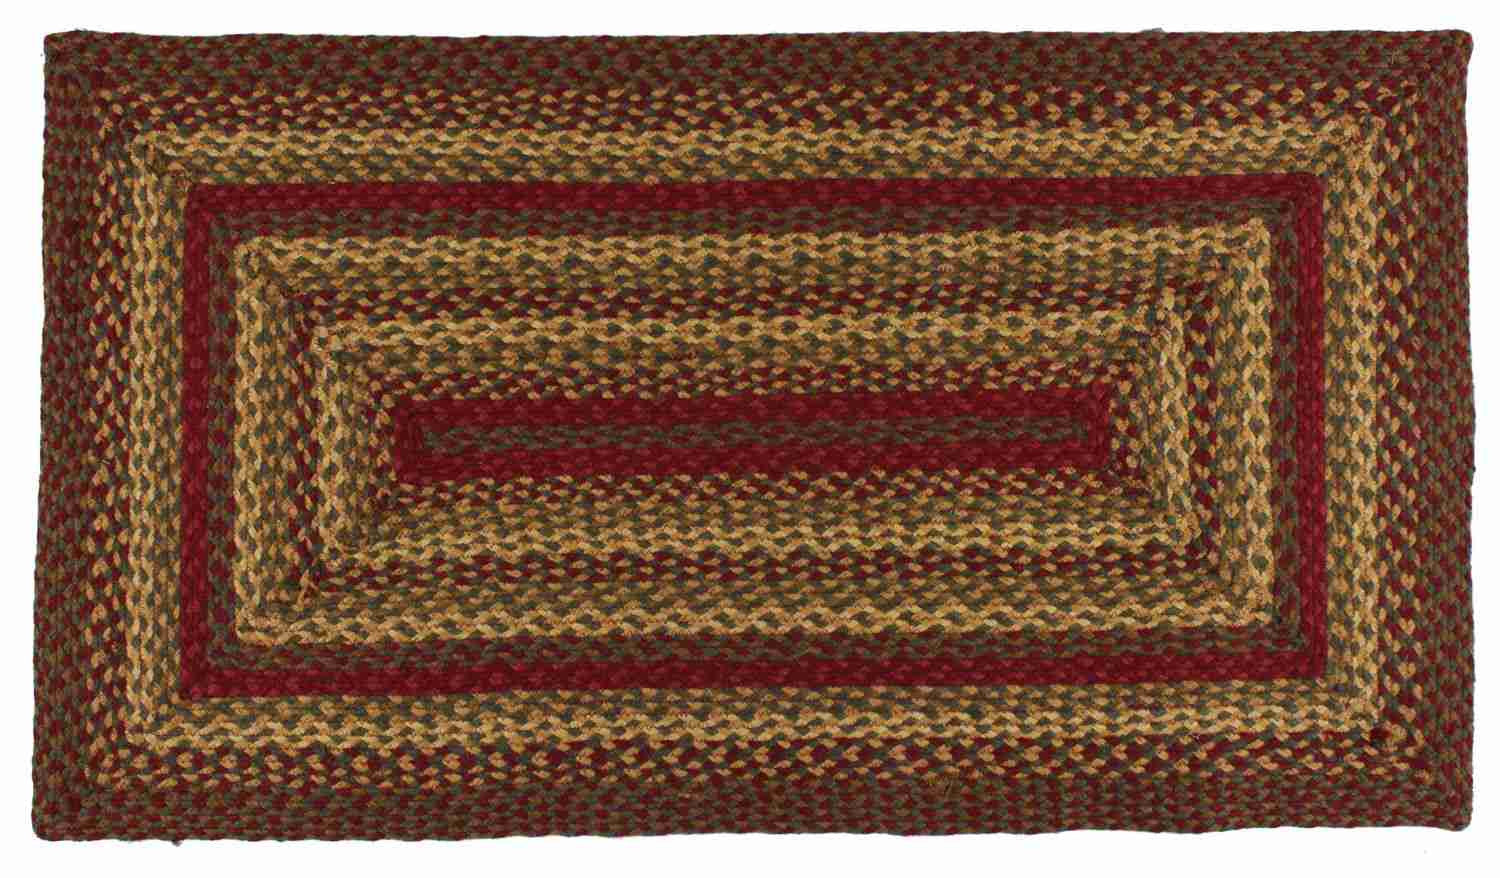 Cinnamon Braided Jute Rug Rectangle 6 X 9 Ft Allysons Place